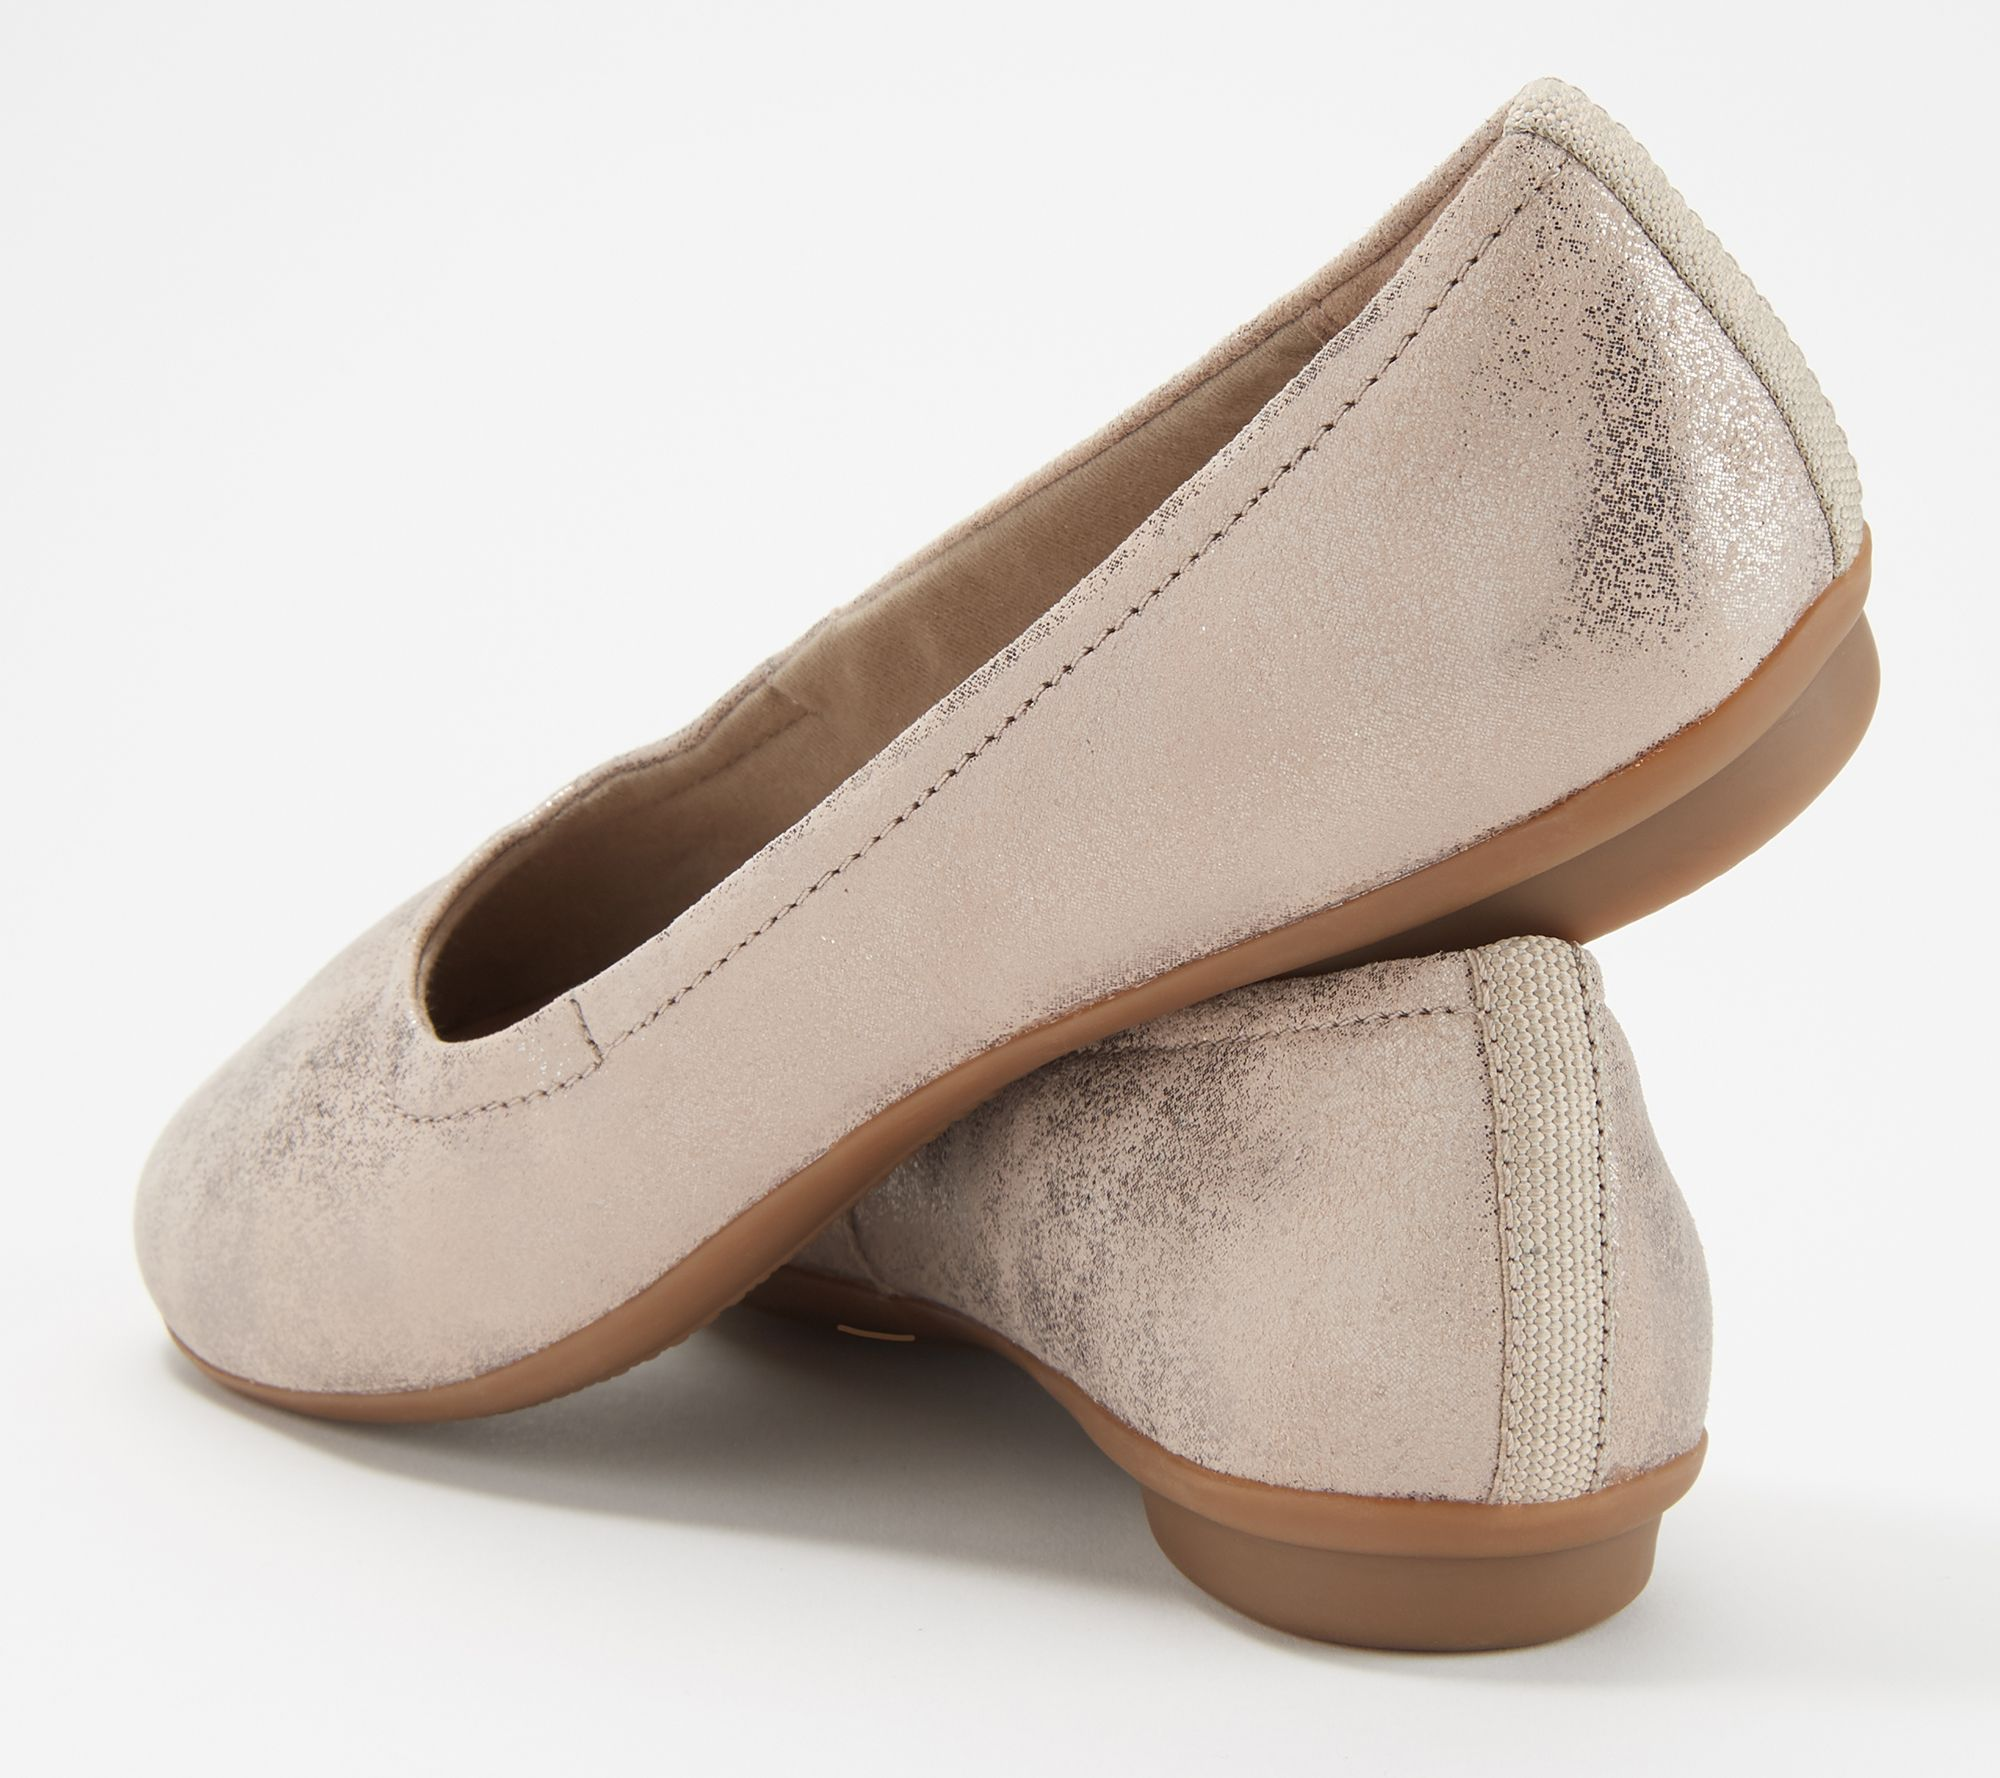 346034fe241bd Clarks Collection Leather or Suede Flats- Gracelin Vail - Page 1 — QVC.com